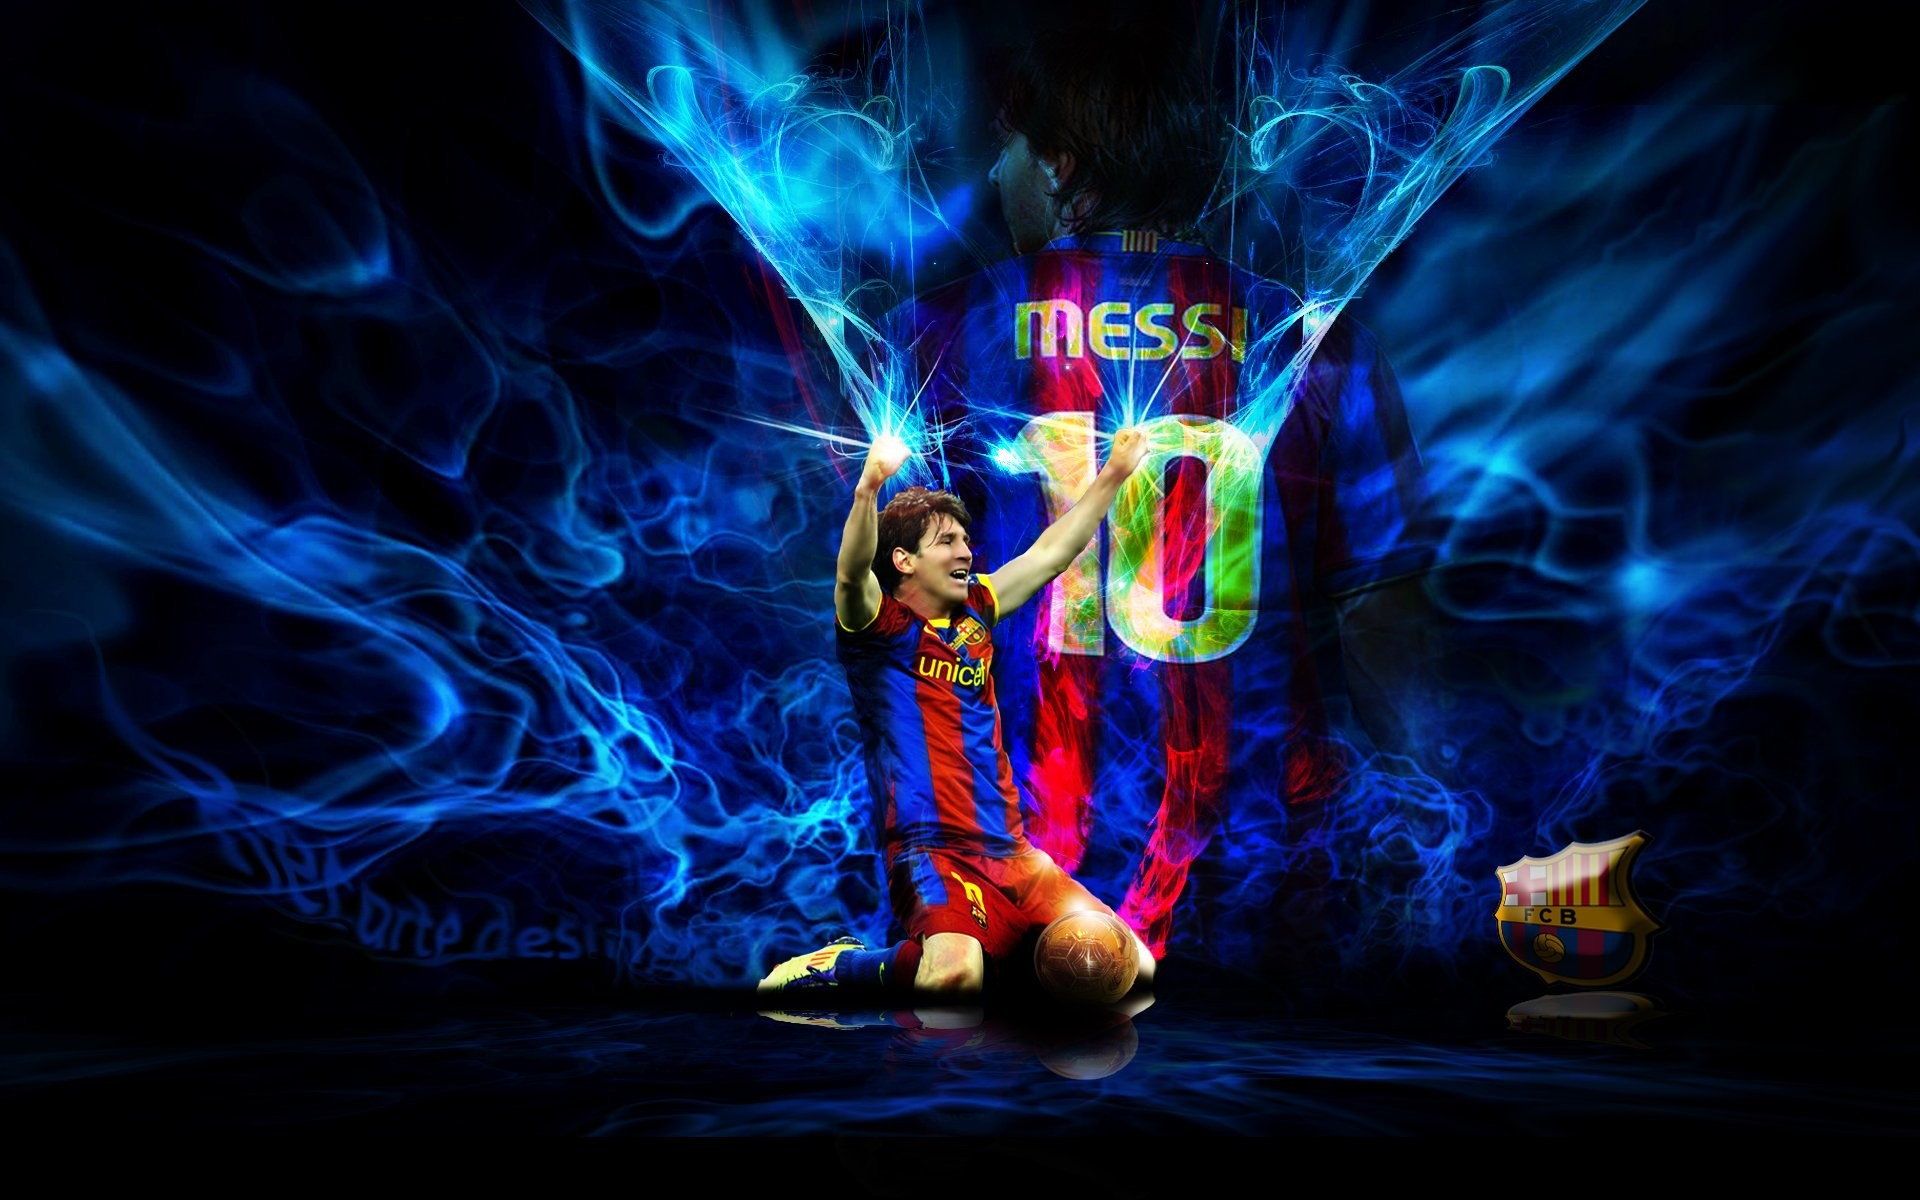 1920x1200 Cool Soccer Background Free Download.